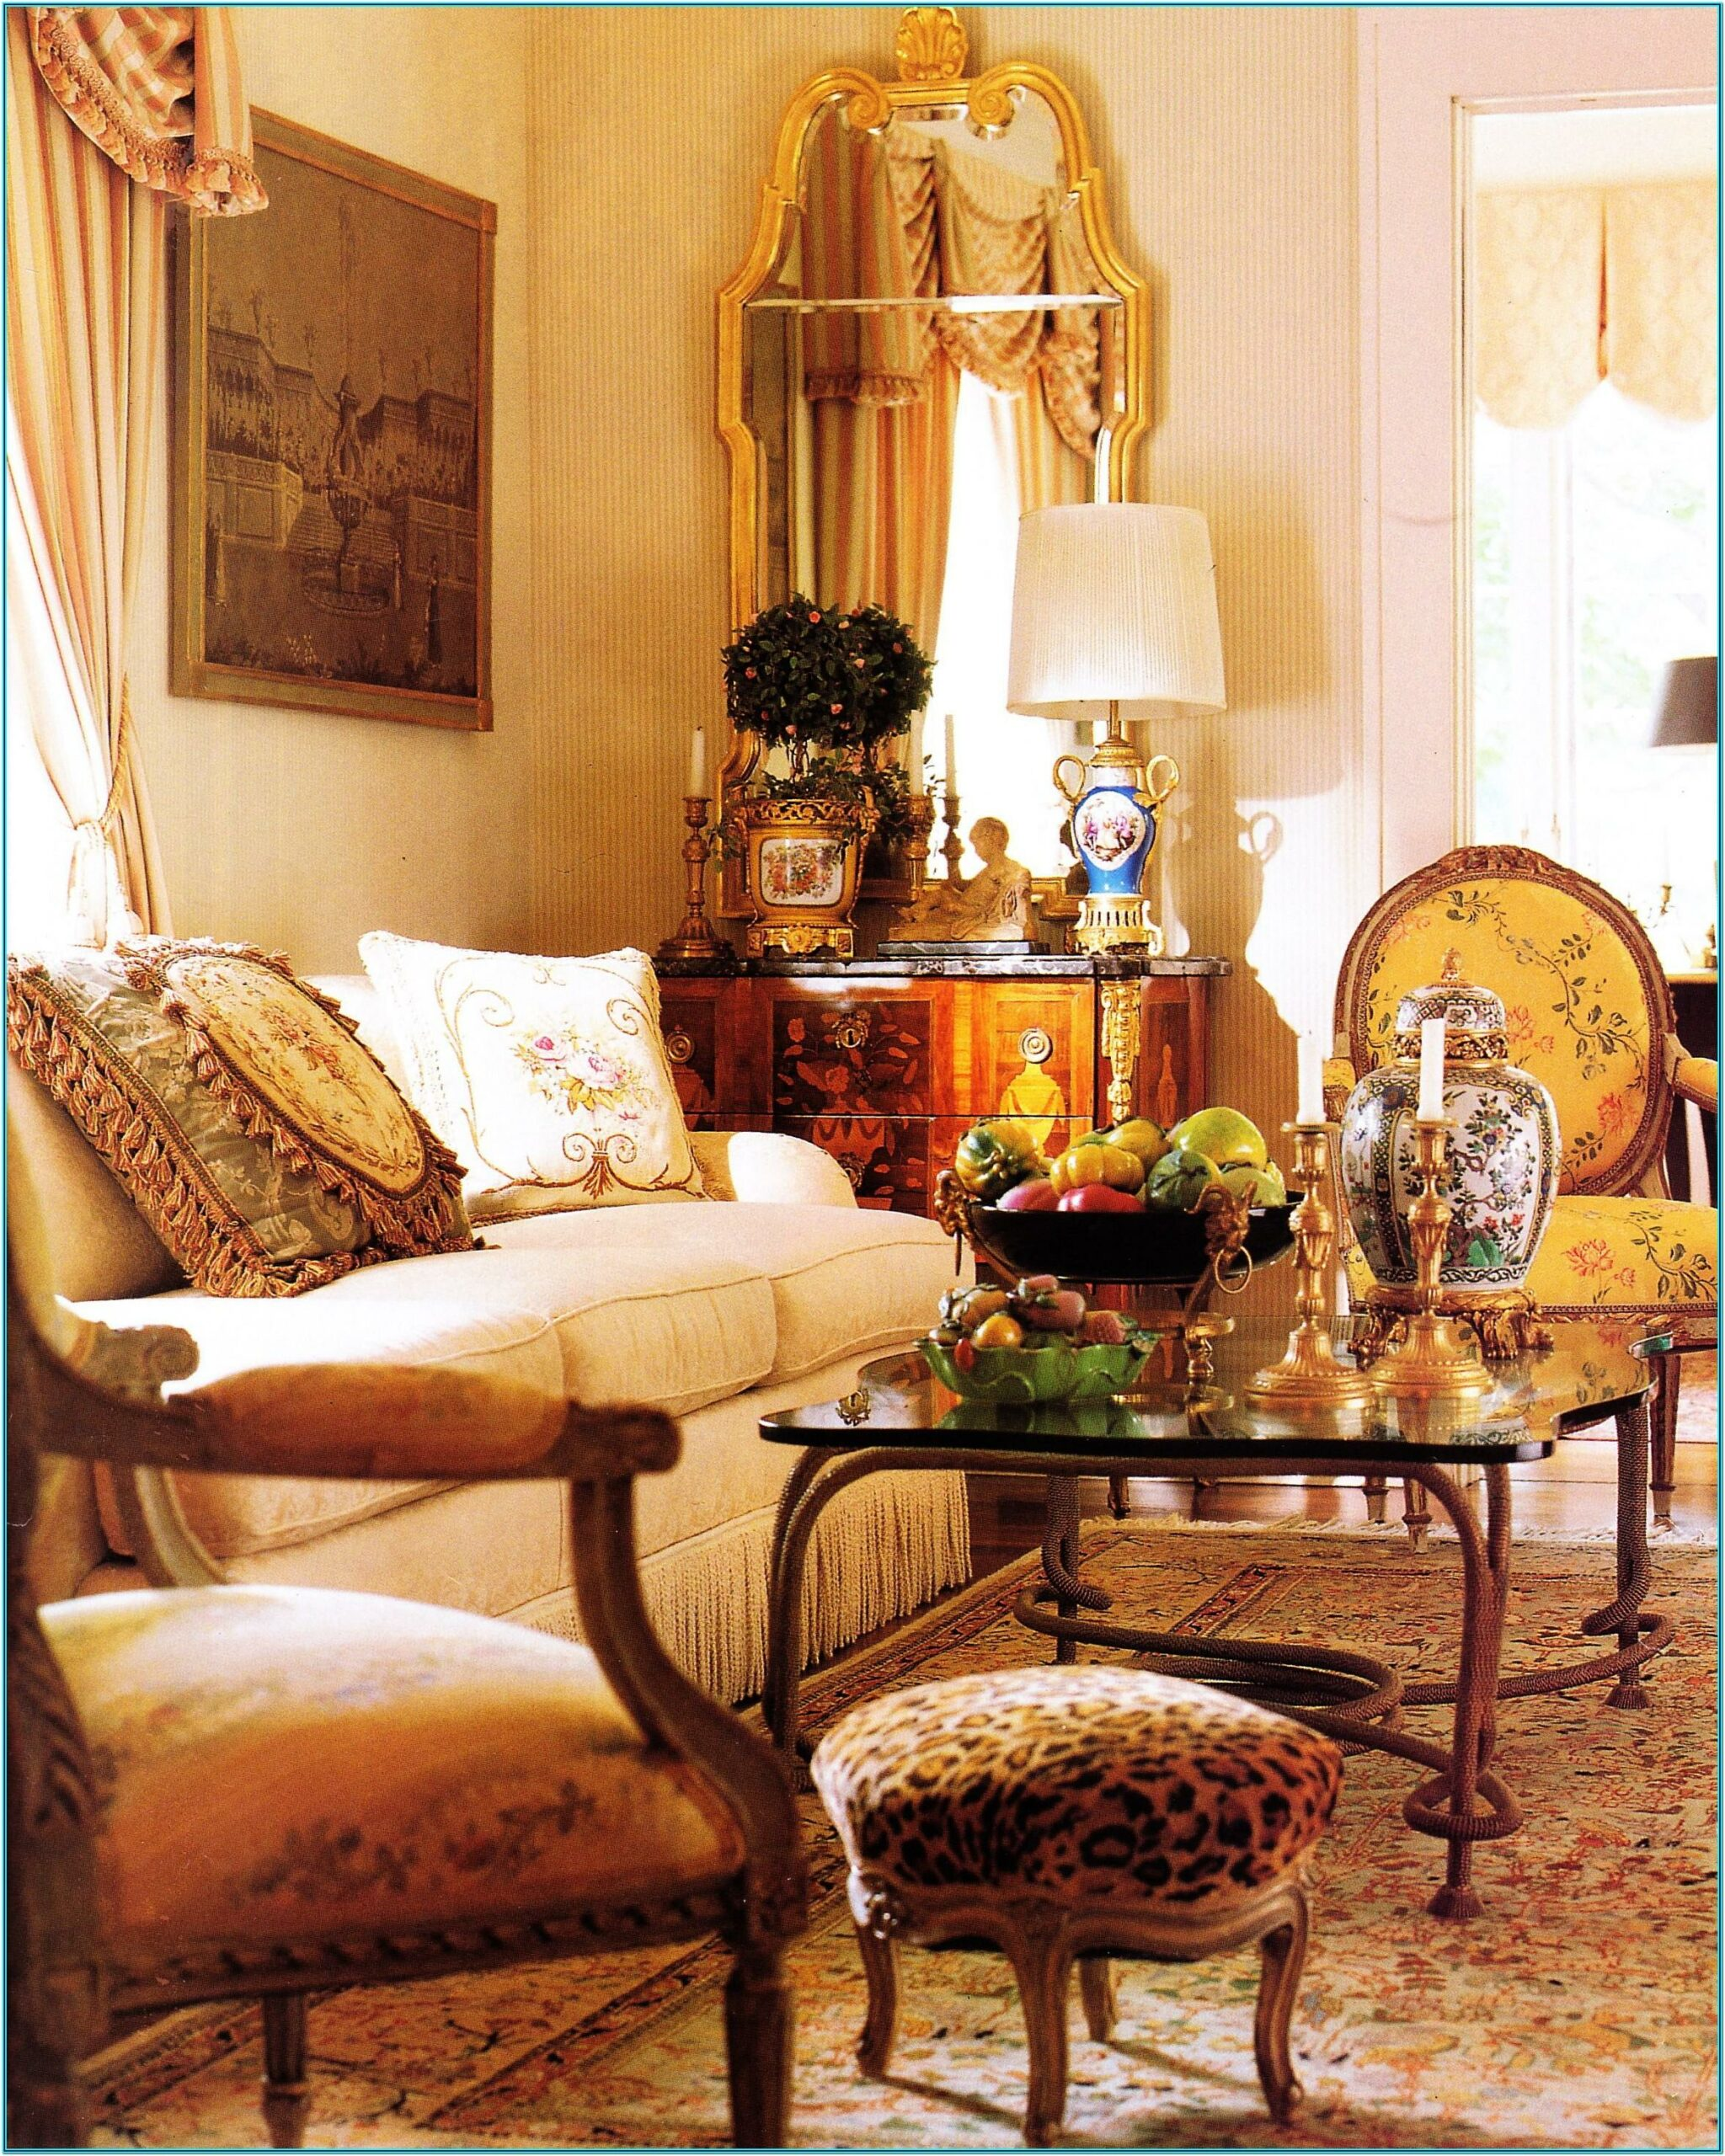 Peter Andrews Decorative Chests Living Room